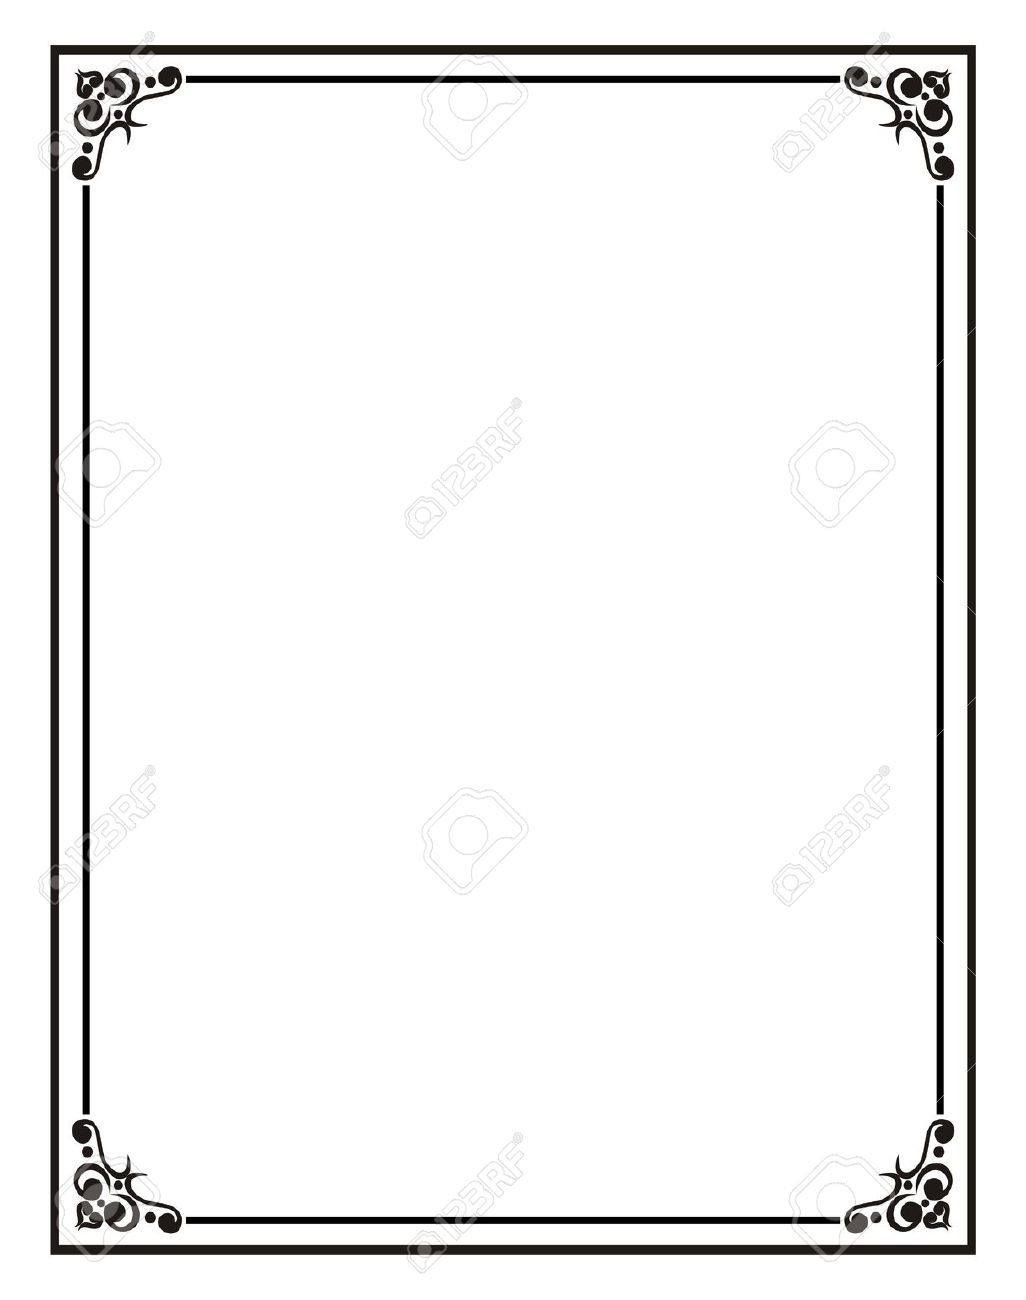 Home Office Certificate Border Stock Photos Pictures Royalty Free With Regard To Word Document